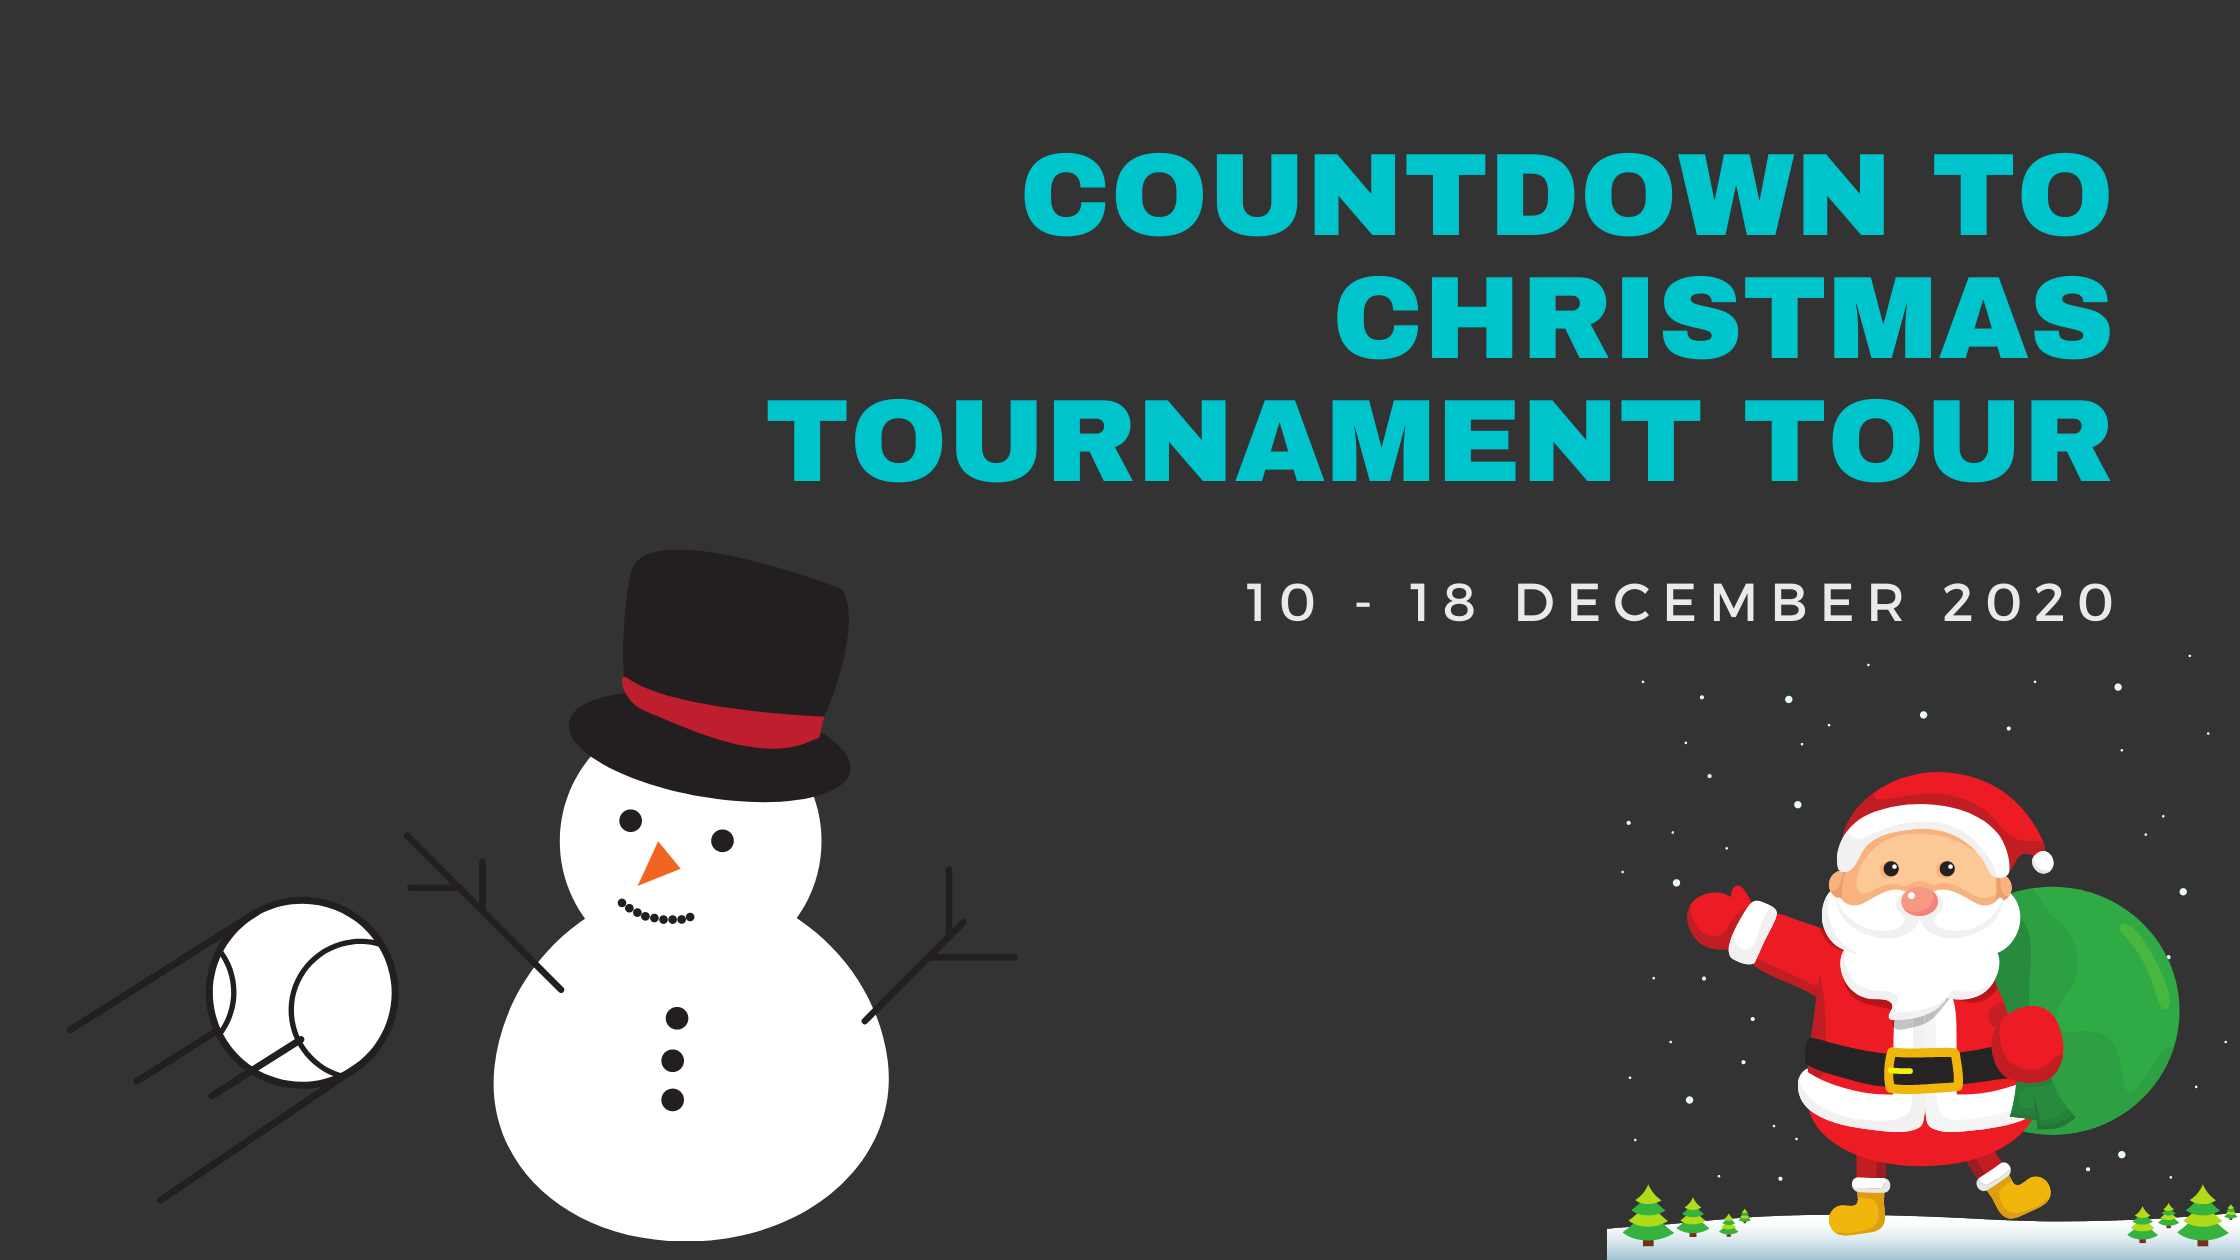 Countdown to Christmas Tournament Tour